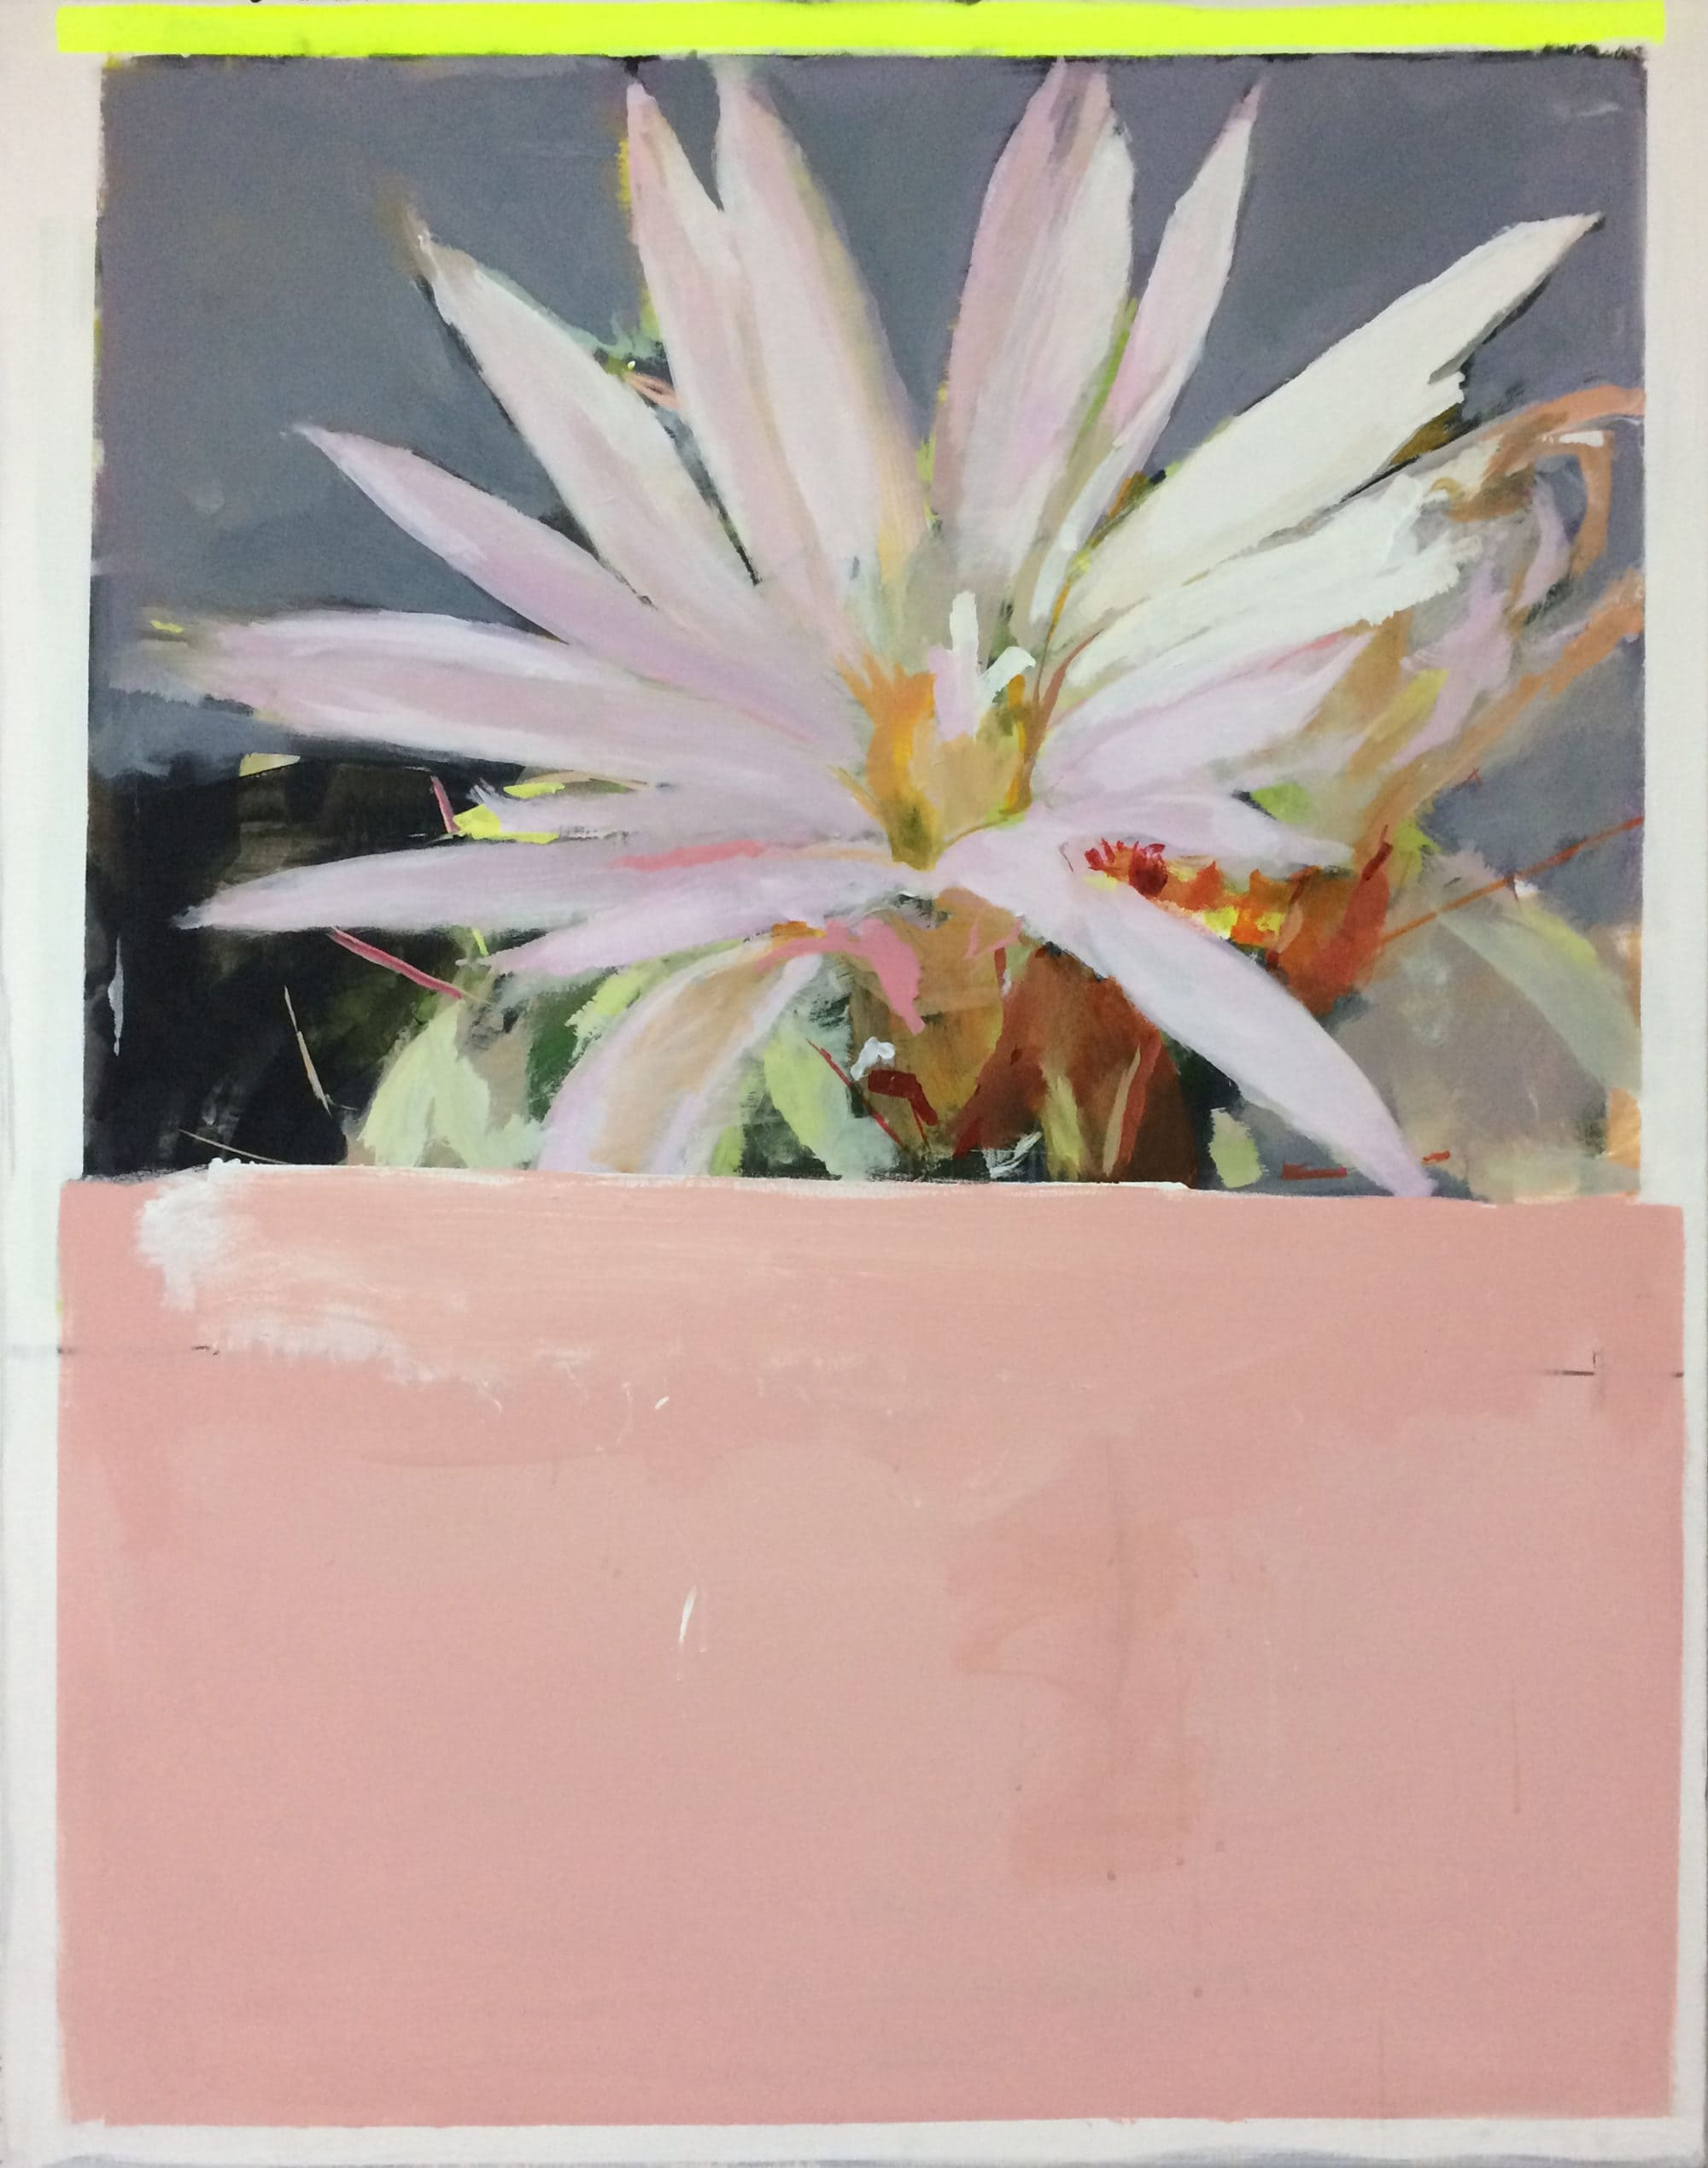 Michael_Harnish_CACTUS FLOWER I_60 x 48 inches_oil